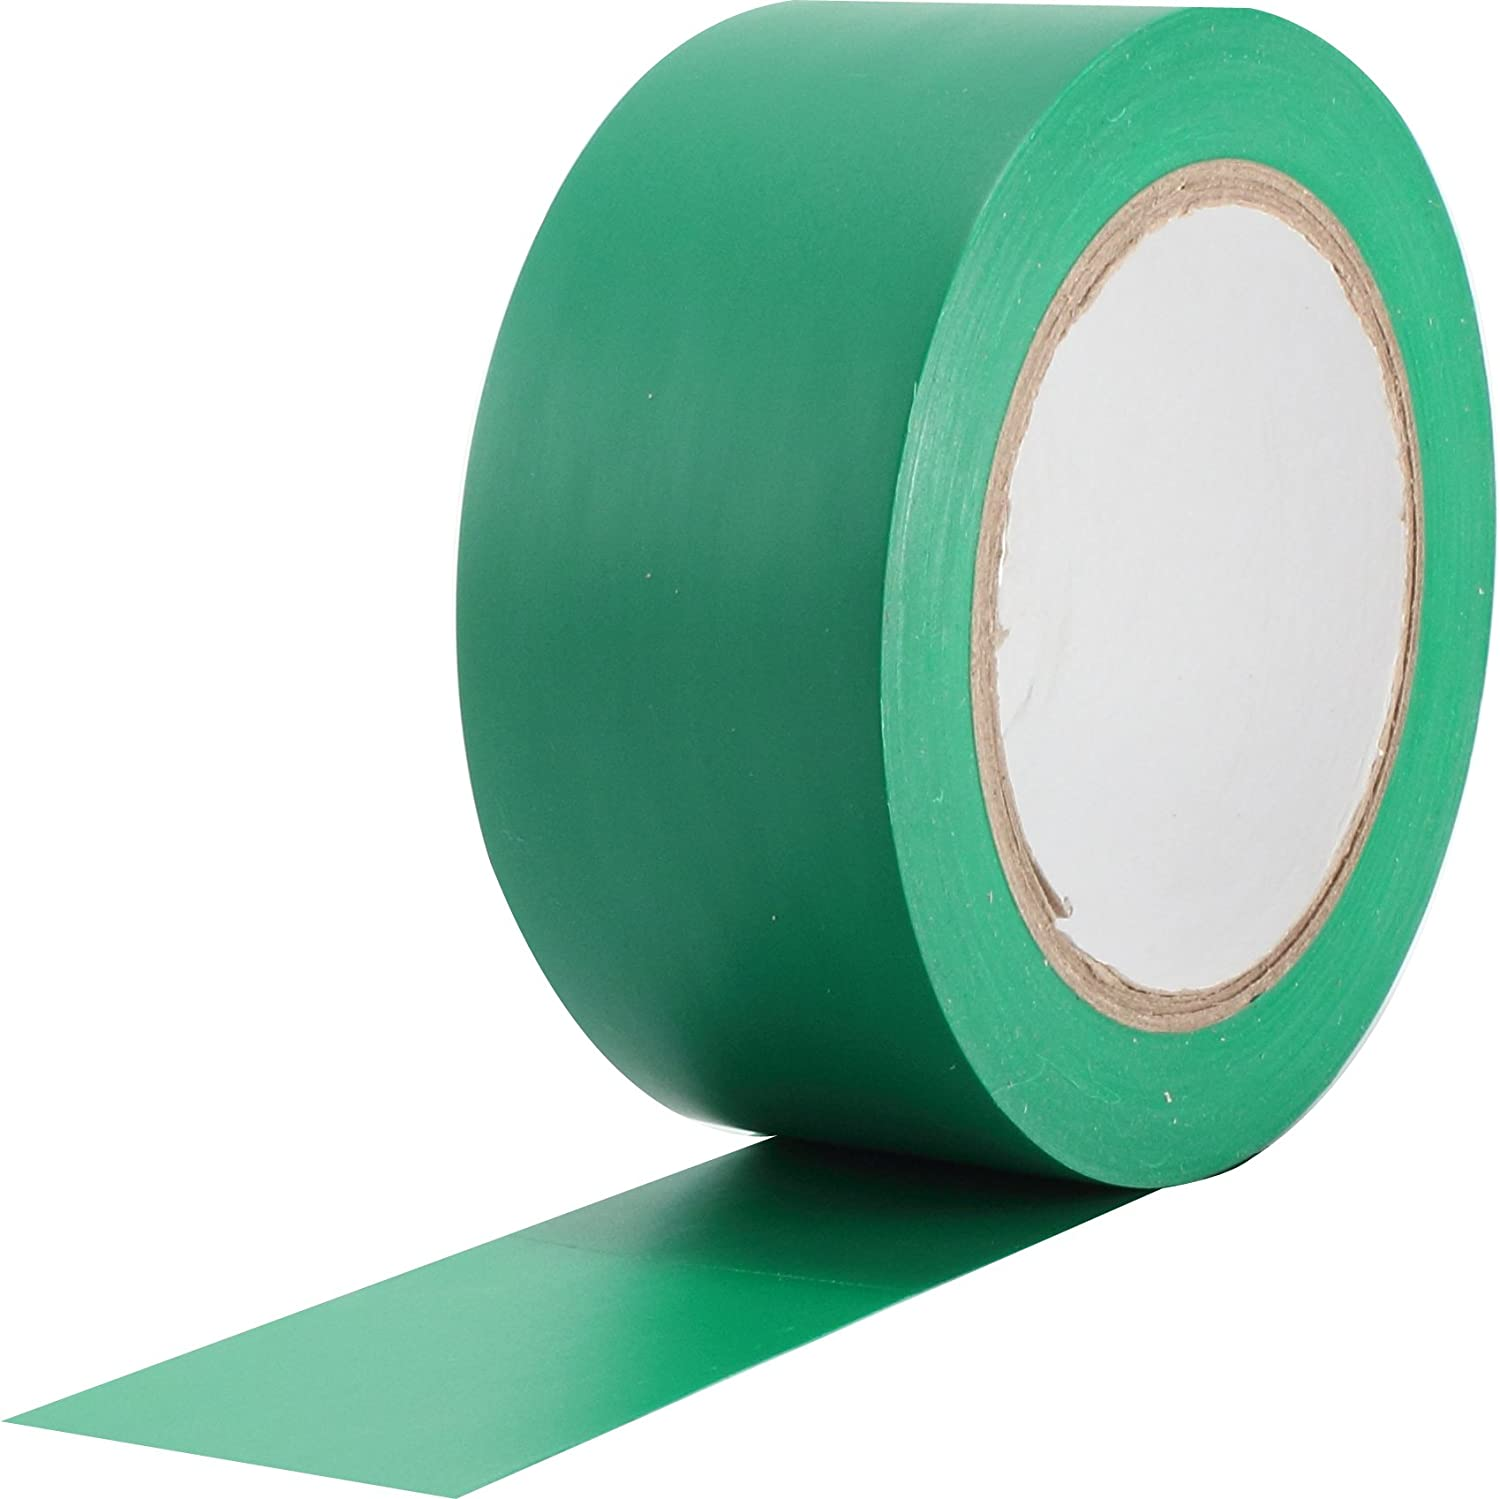 ProTapes Pro 50 Premium Vinyl Safety Marking and Dance Floor Splicing Tape, 6 Mils Thick, 36 Yds Length X 3' Width, Green (Pack of 1) 36 Yds Length X 3 Width ProTapes & Specialties 50-6-3x36-GR